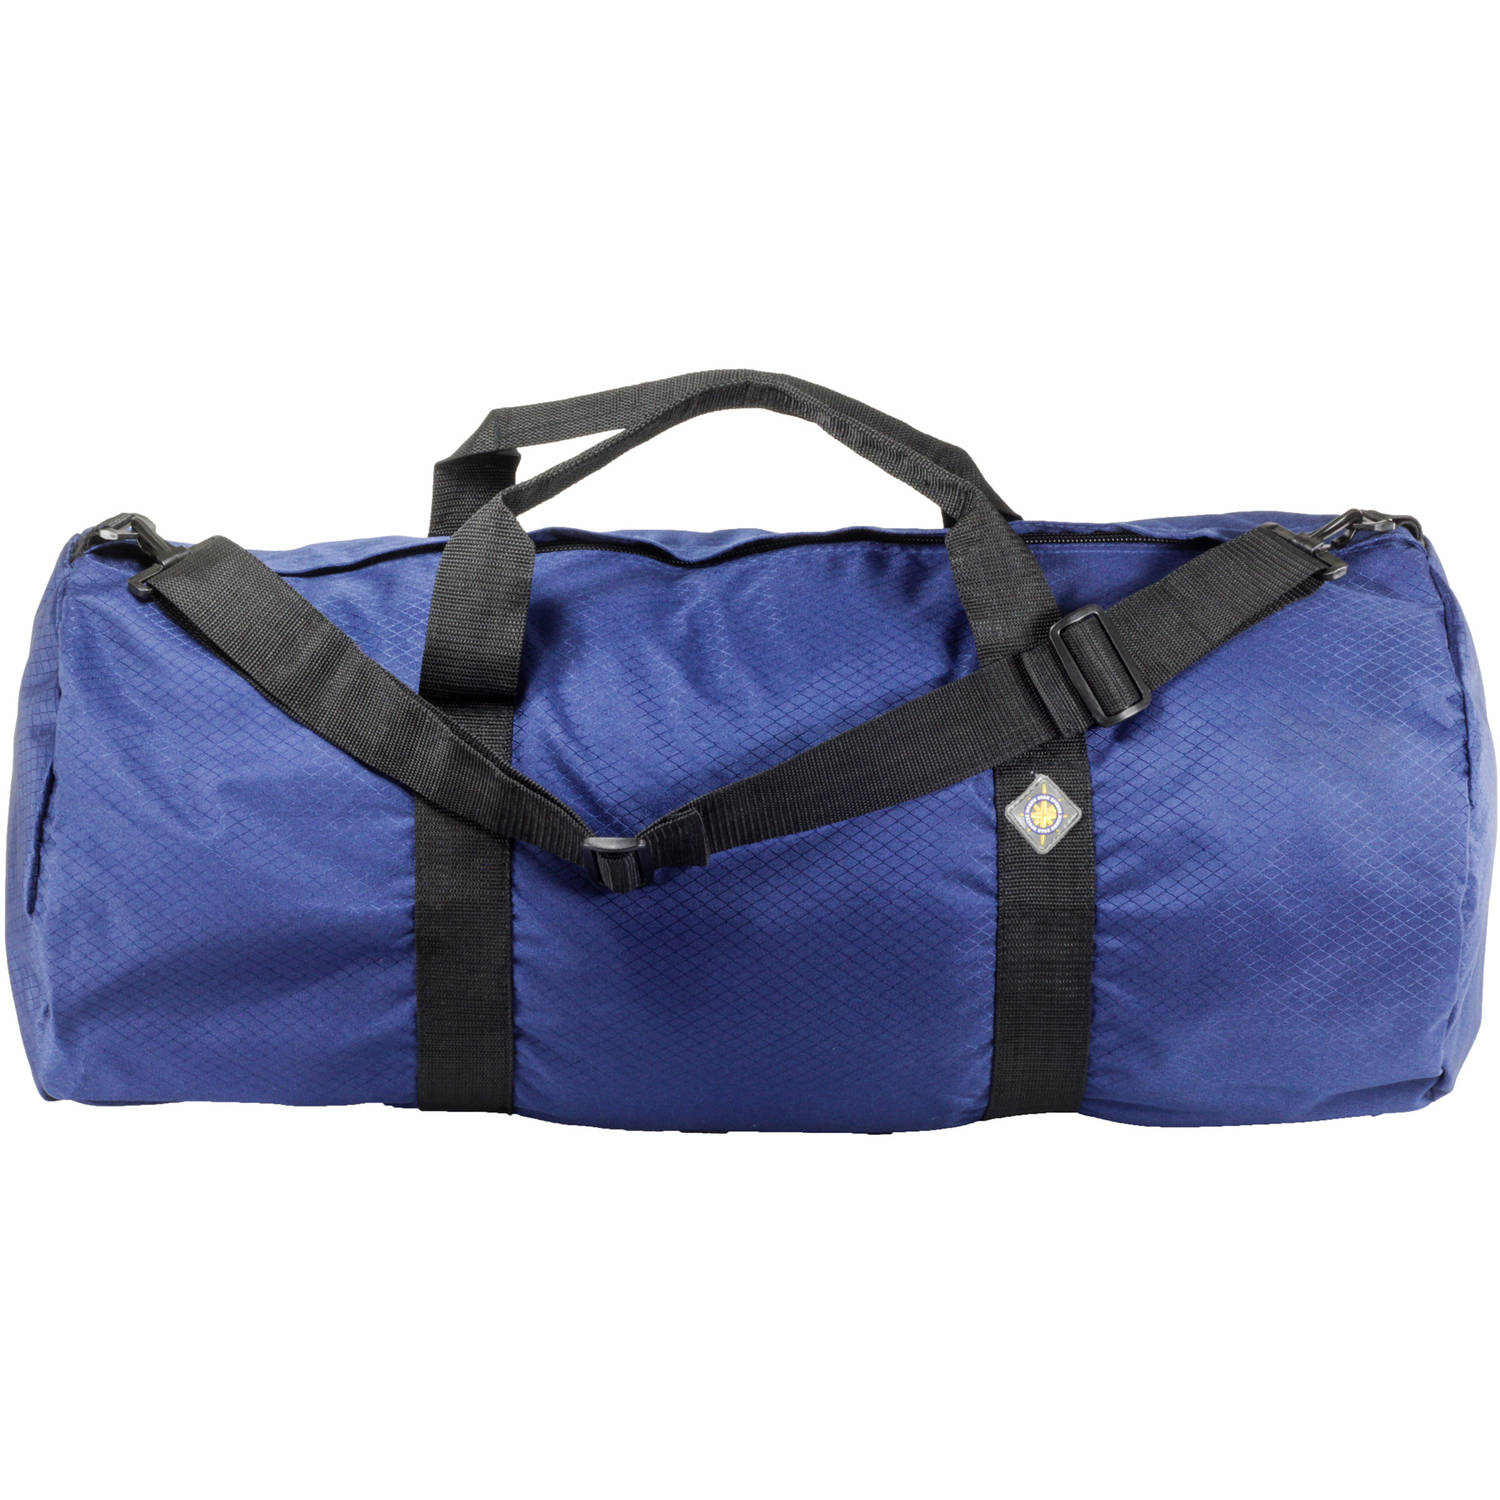 North Star SD 1430 Sport Duffle Bag, Pacific Blue by Northstar Bags